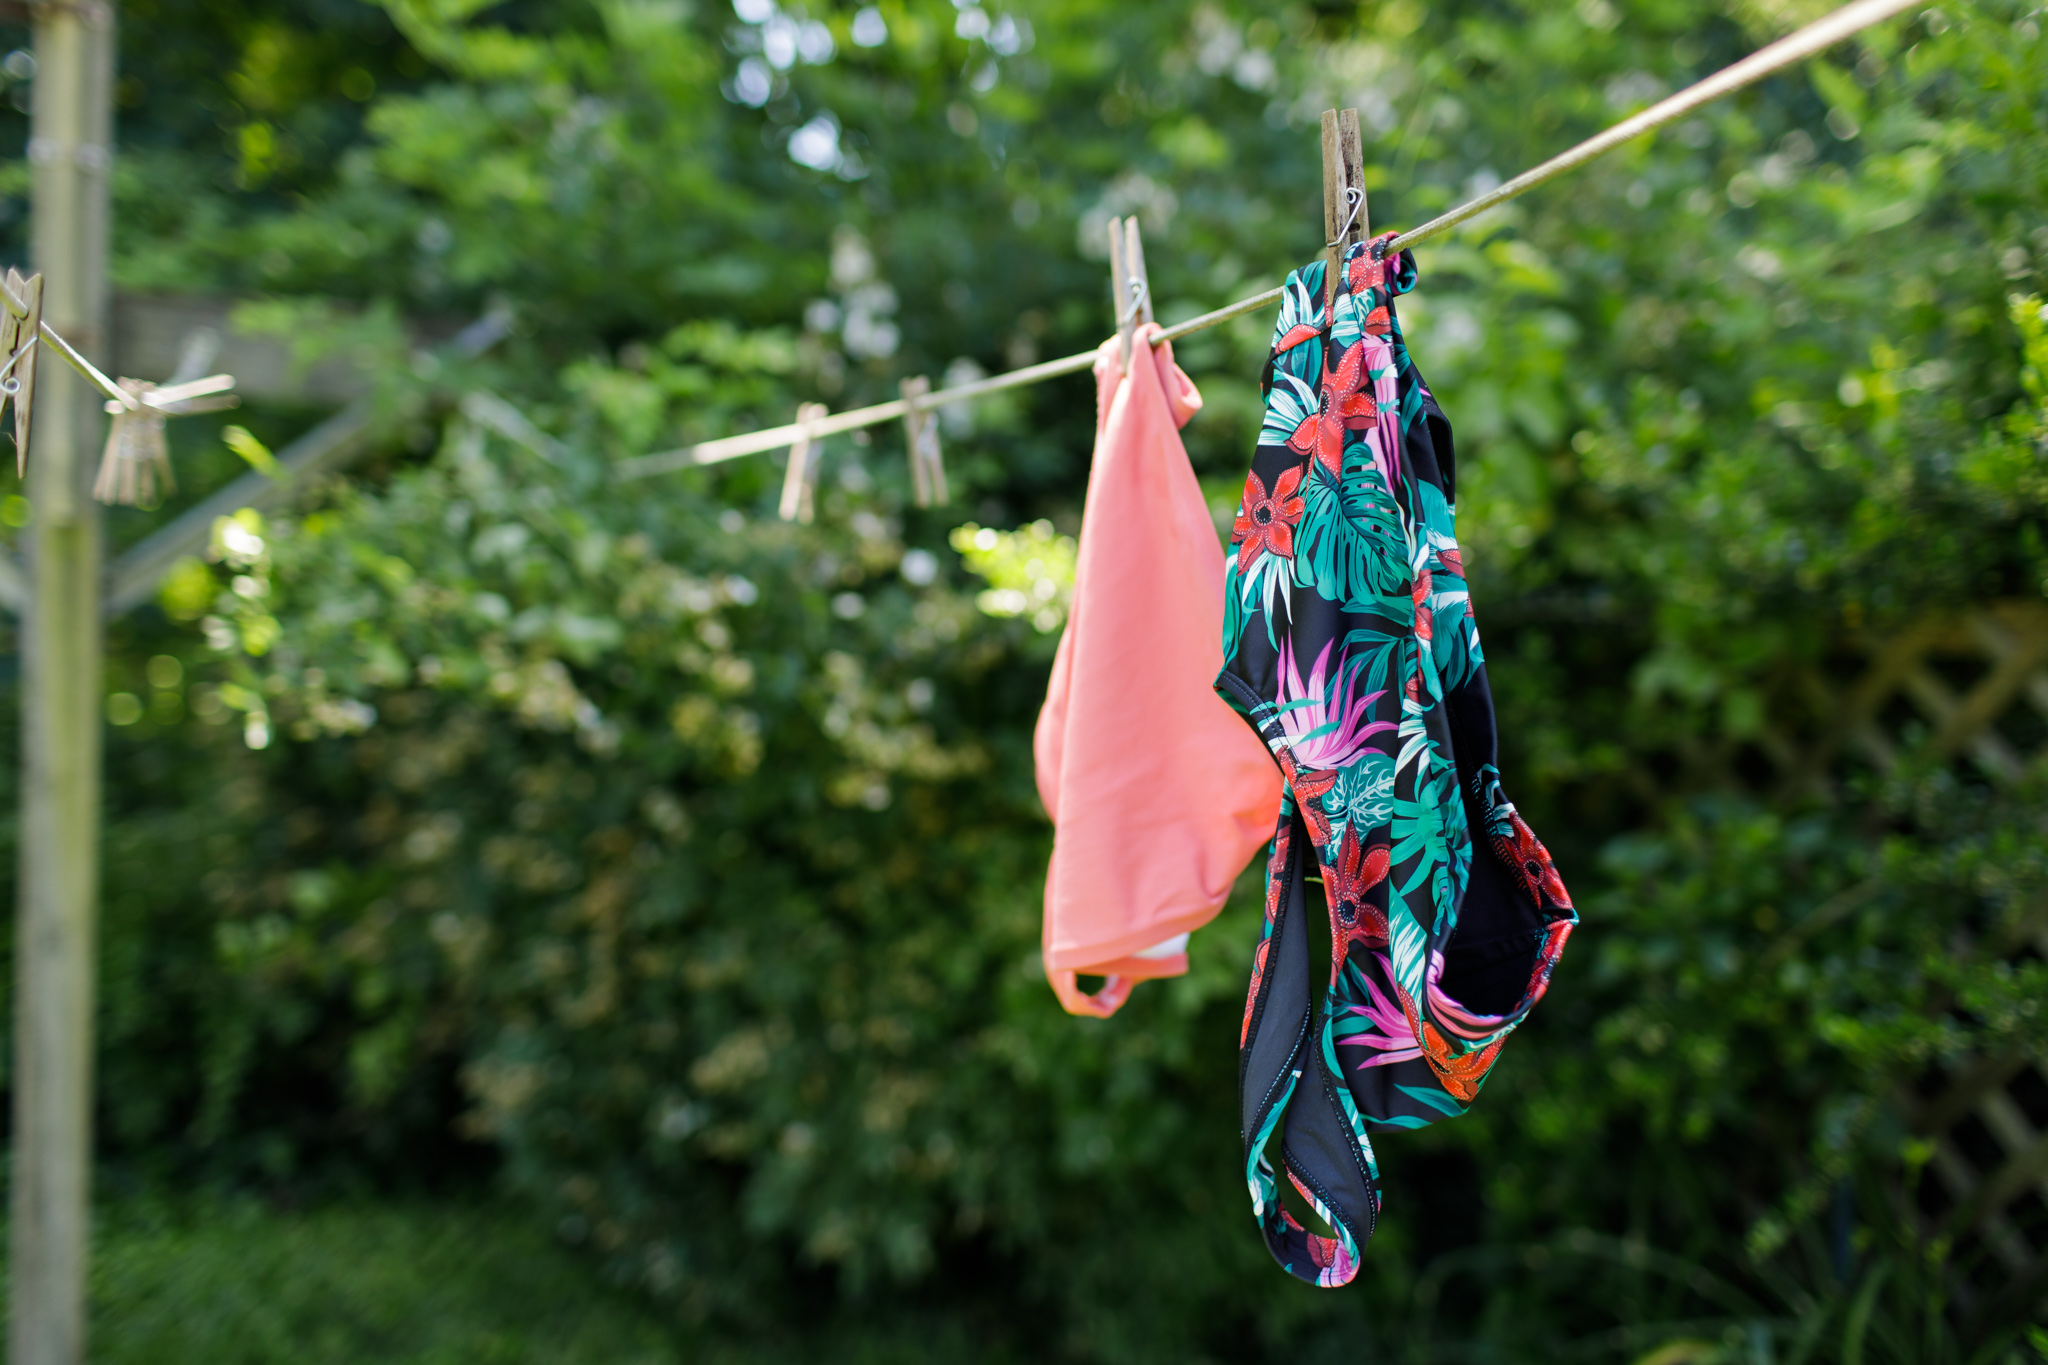 bathing suit hanging on a clothesline